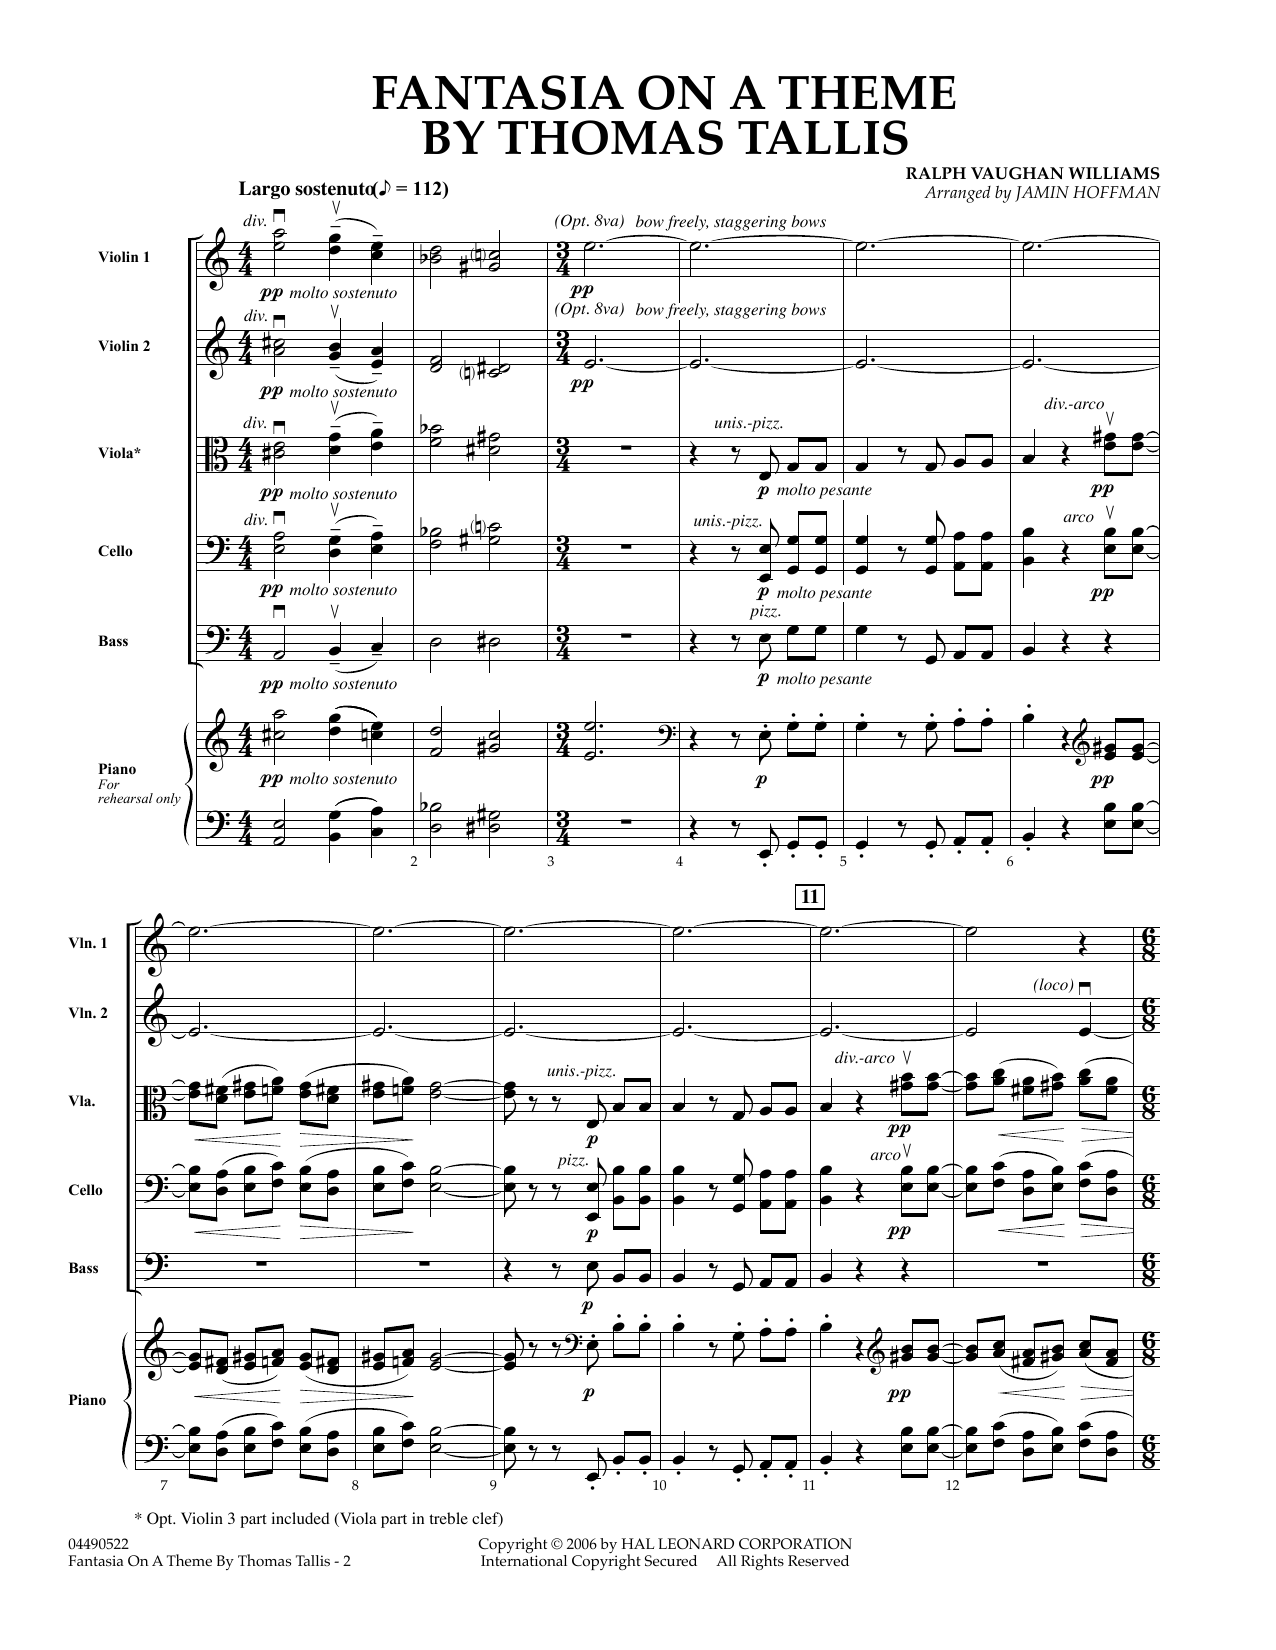 Fantasia on a Theme by Thomas Tallis (COMPLETE) sheet music for orchestra by Ralph Vaughan Williams and Jamin Hoffman. Score Image Preview.